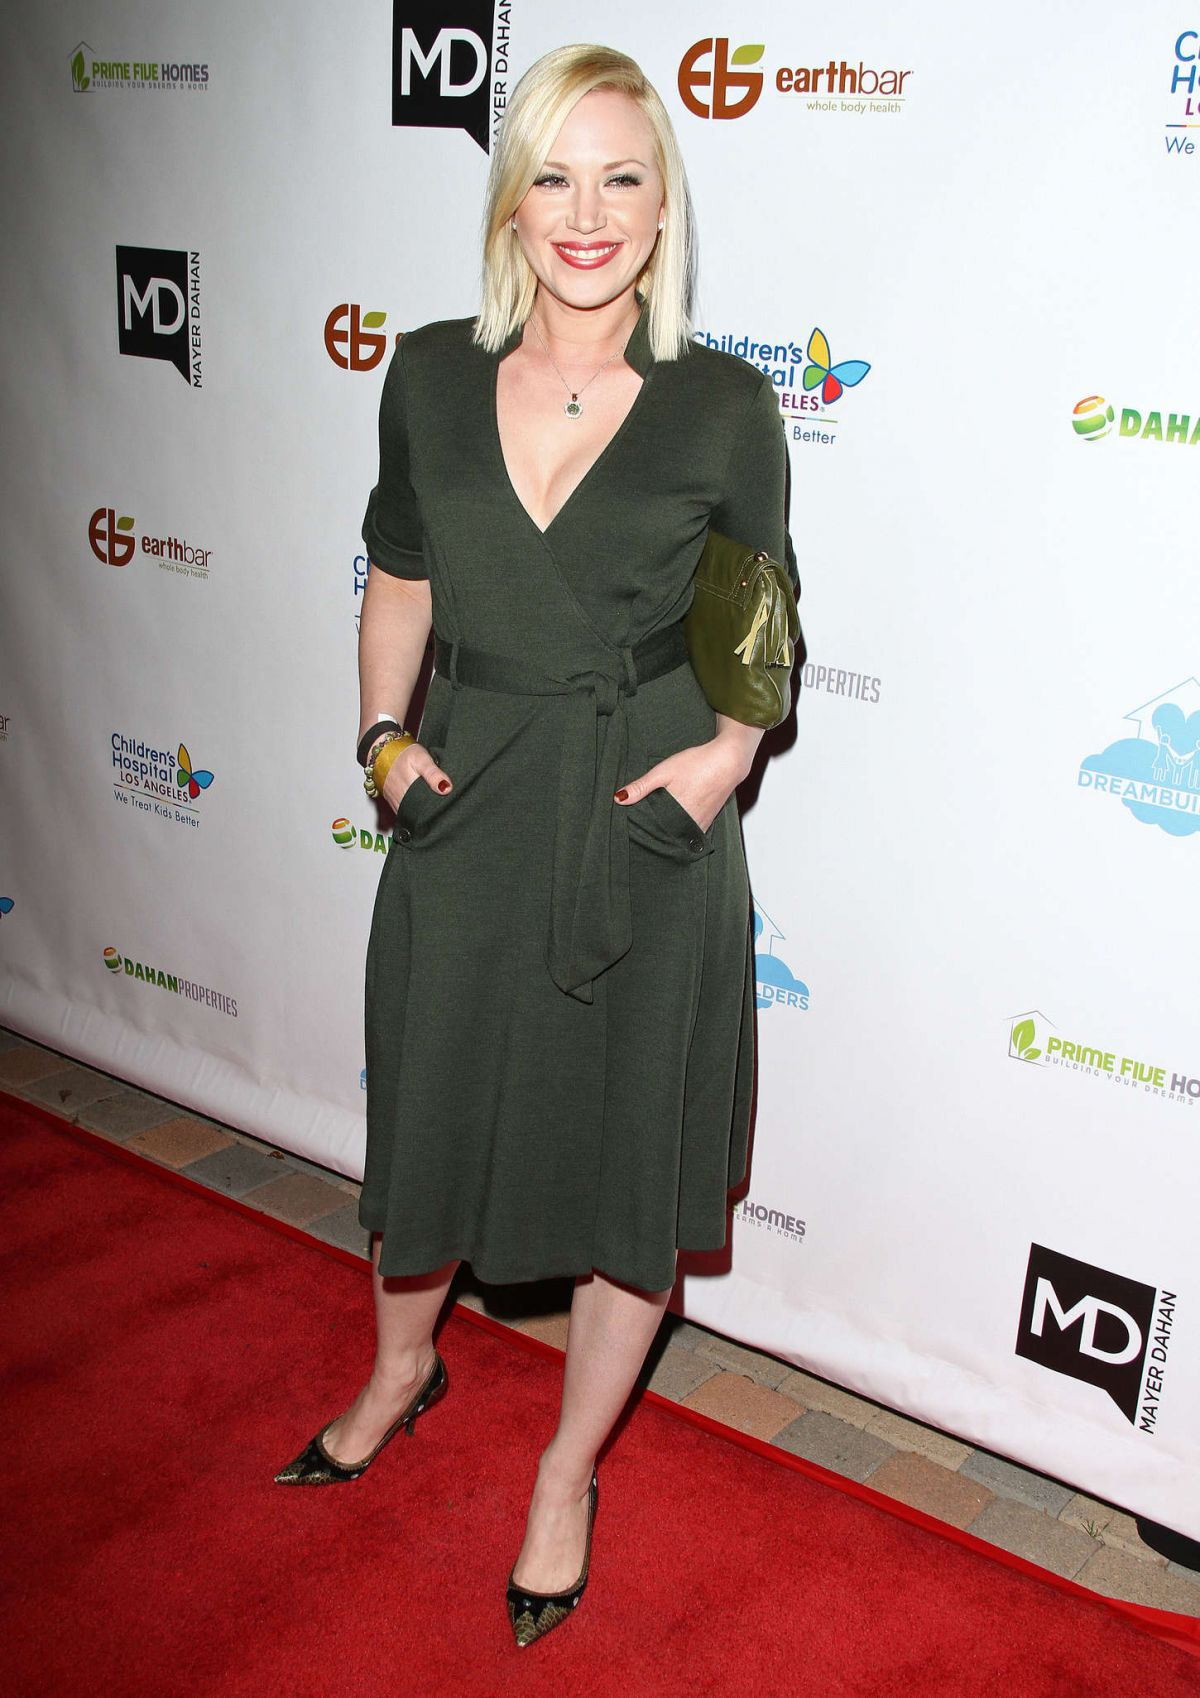 ADRIENNE FRANTZ at Dream Builders Project A Brighter Future for Children Gala